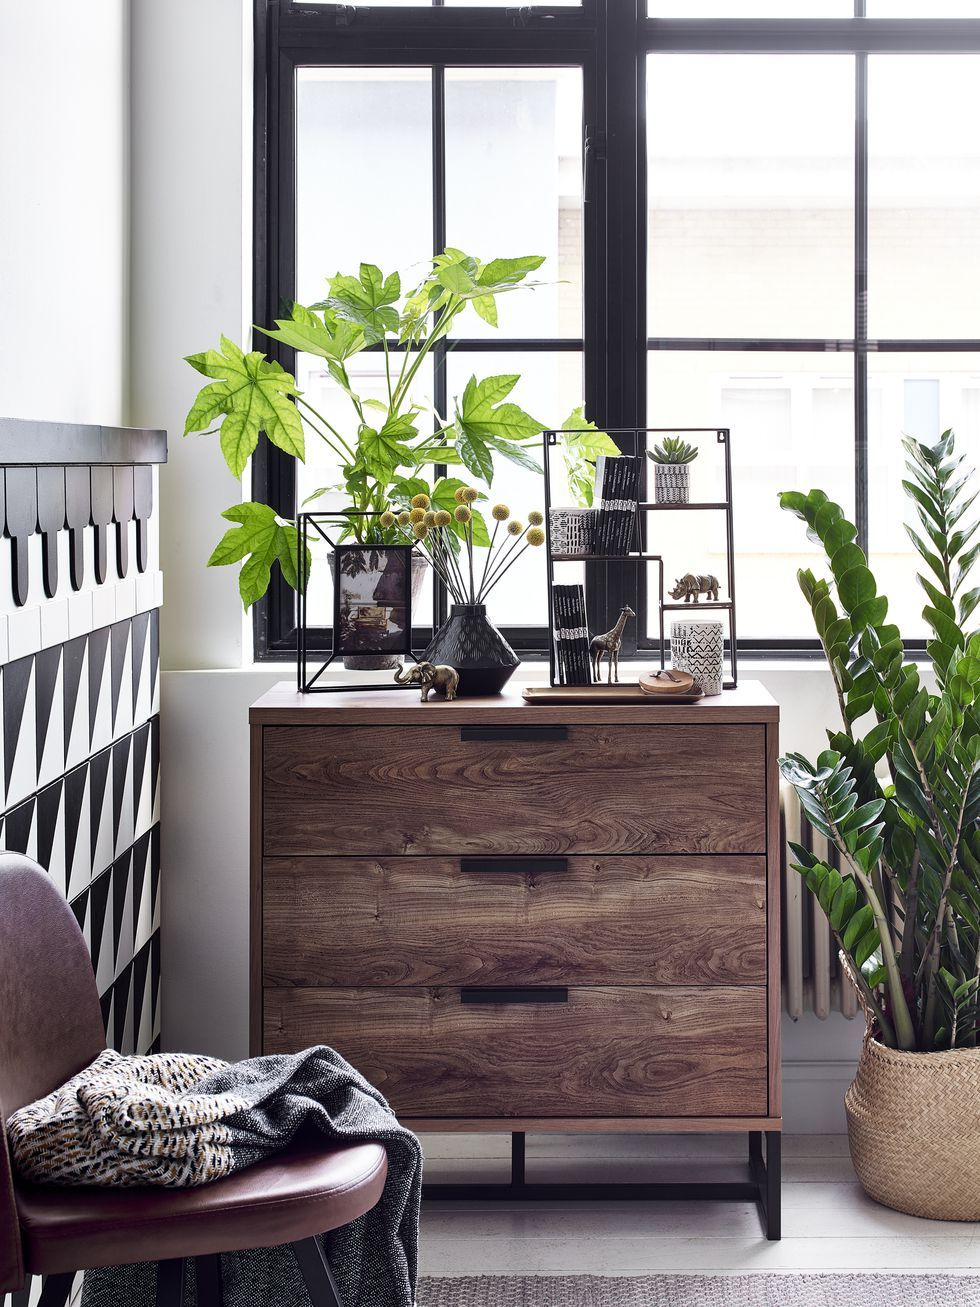 5 Reasons To Love Argos Home S Striking New Spring Interiors R